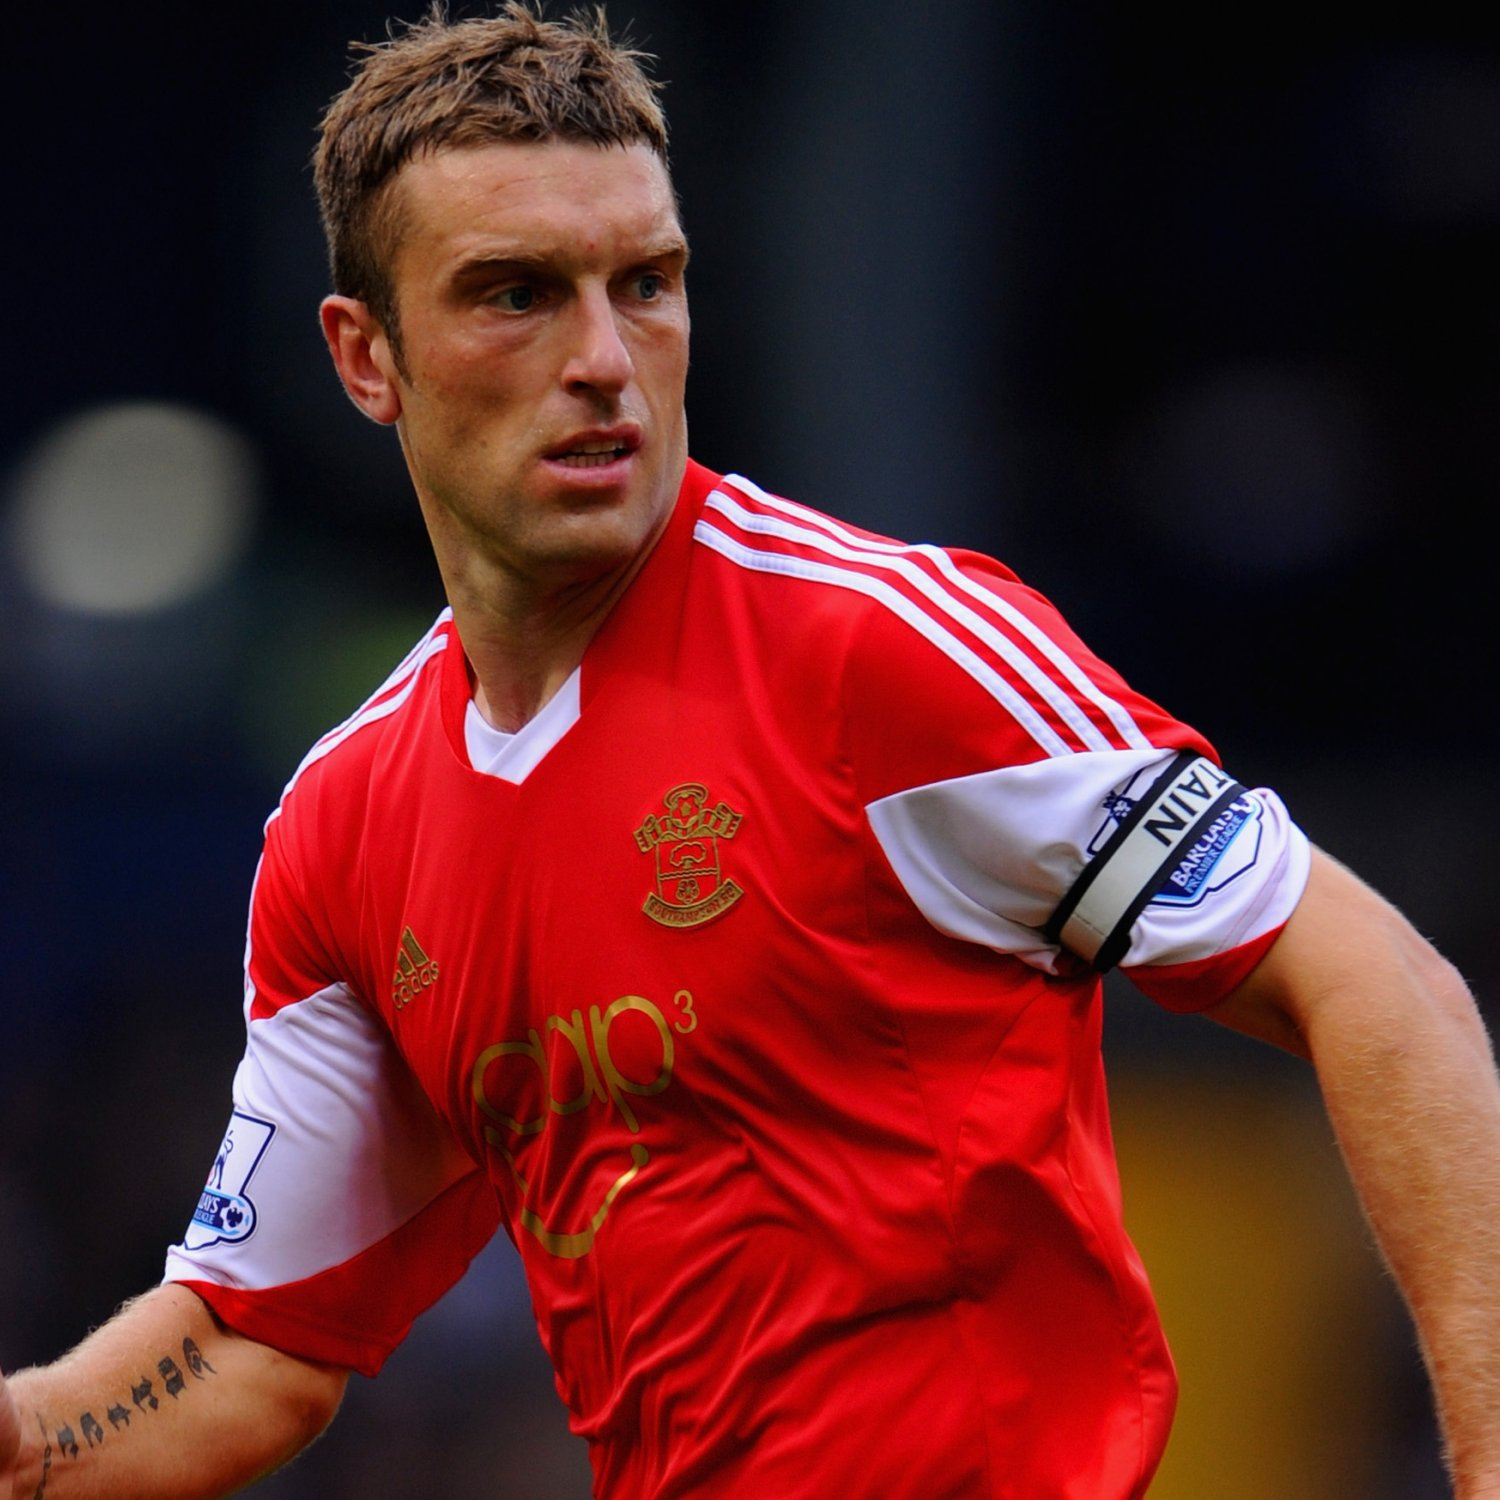 hi-res-176707982-rickie-lambert-of-southampton-in-action-during-the_crop_exact